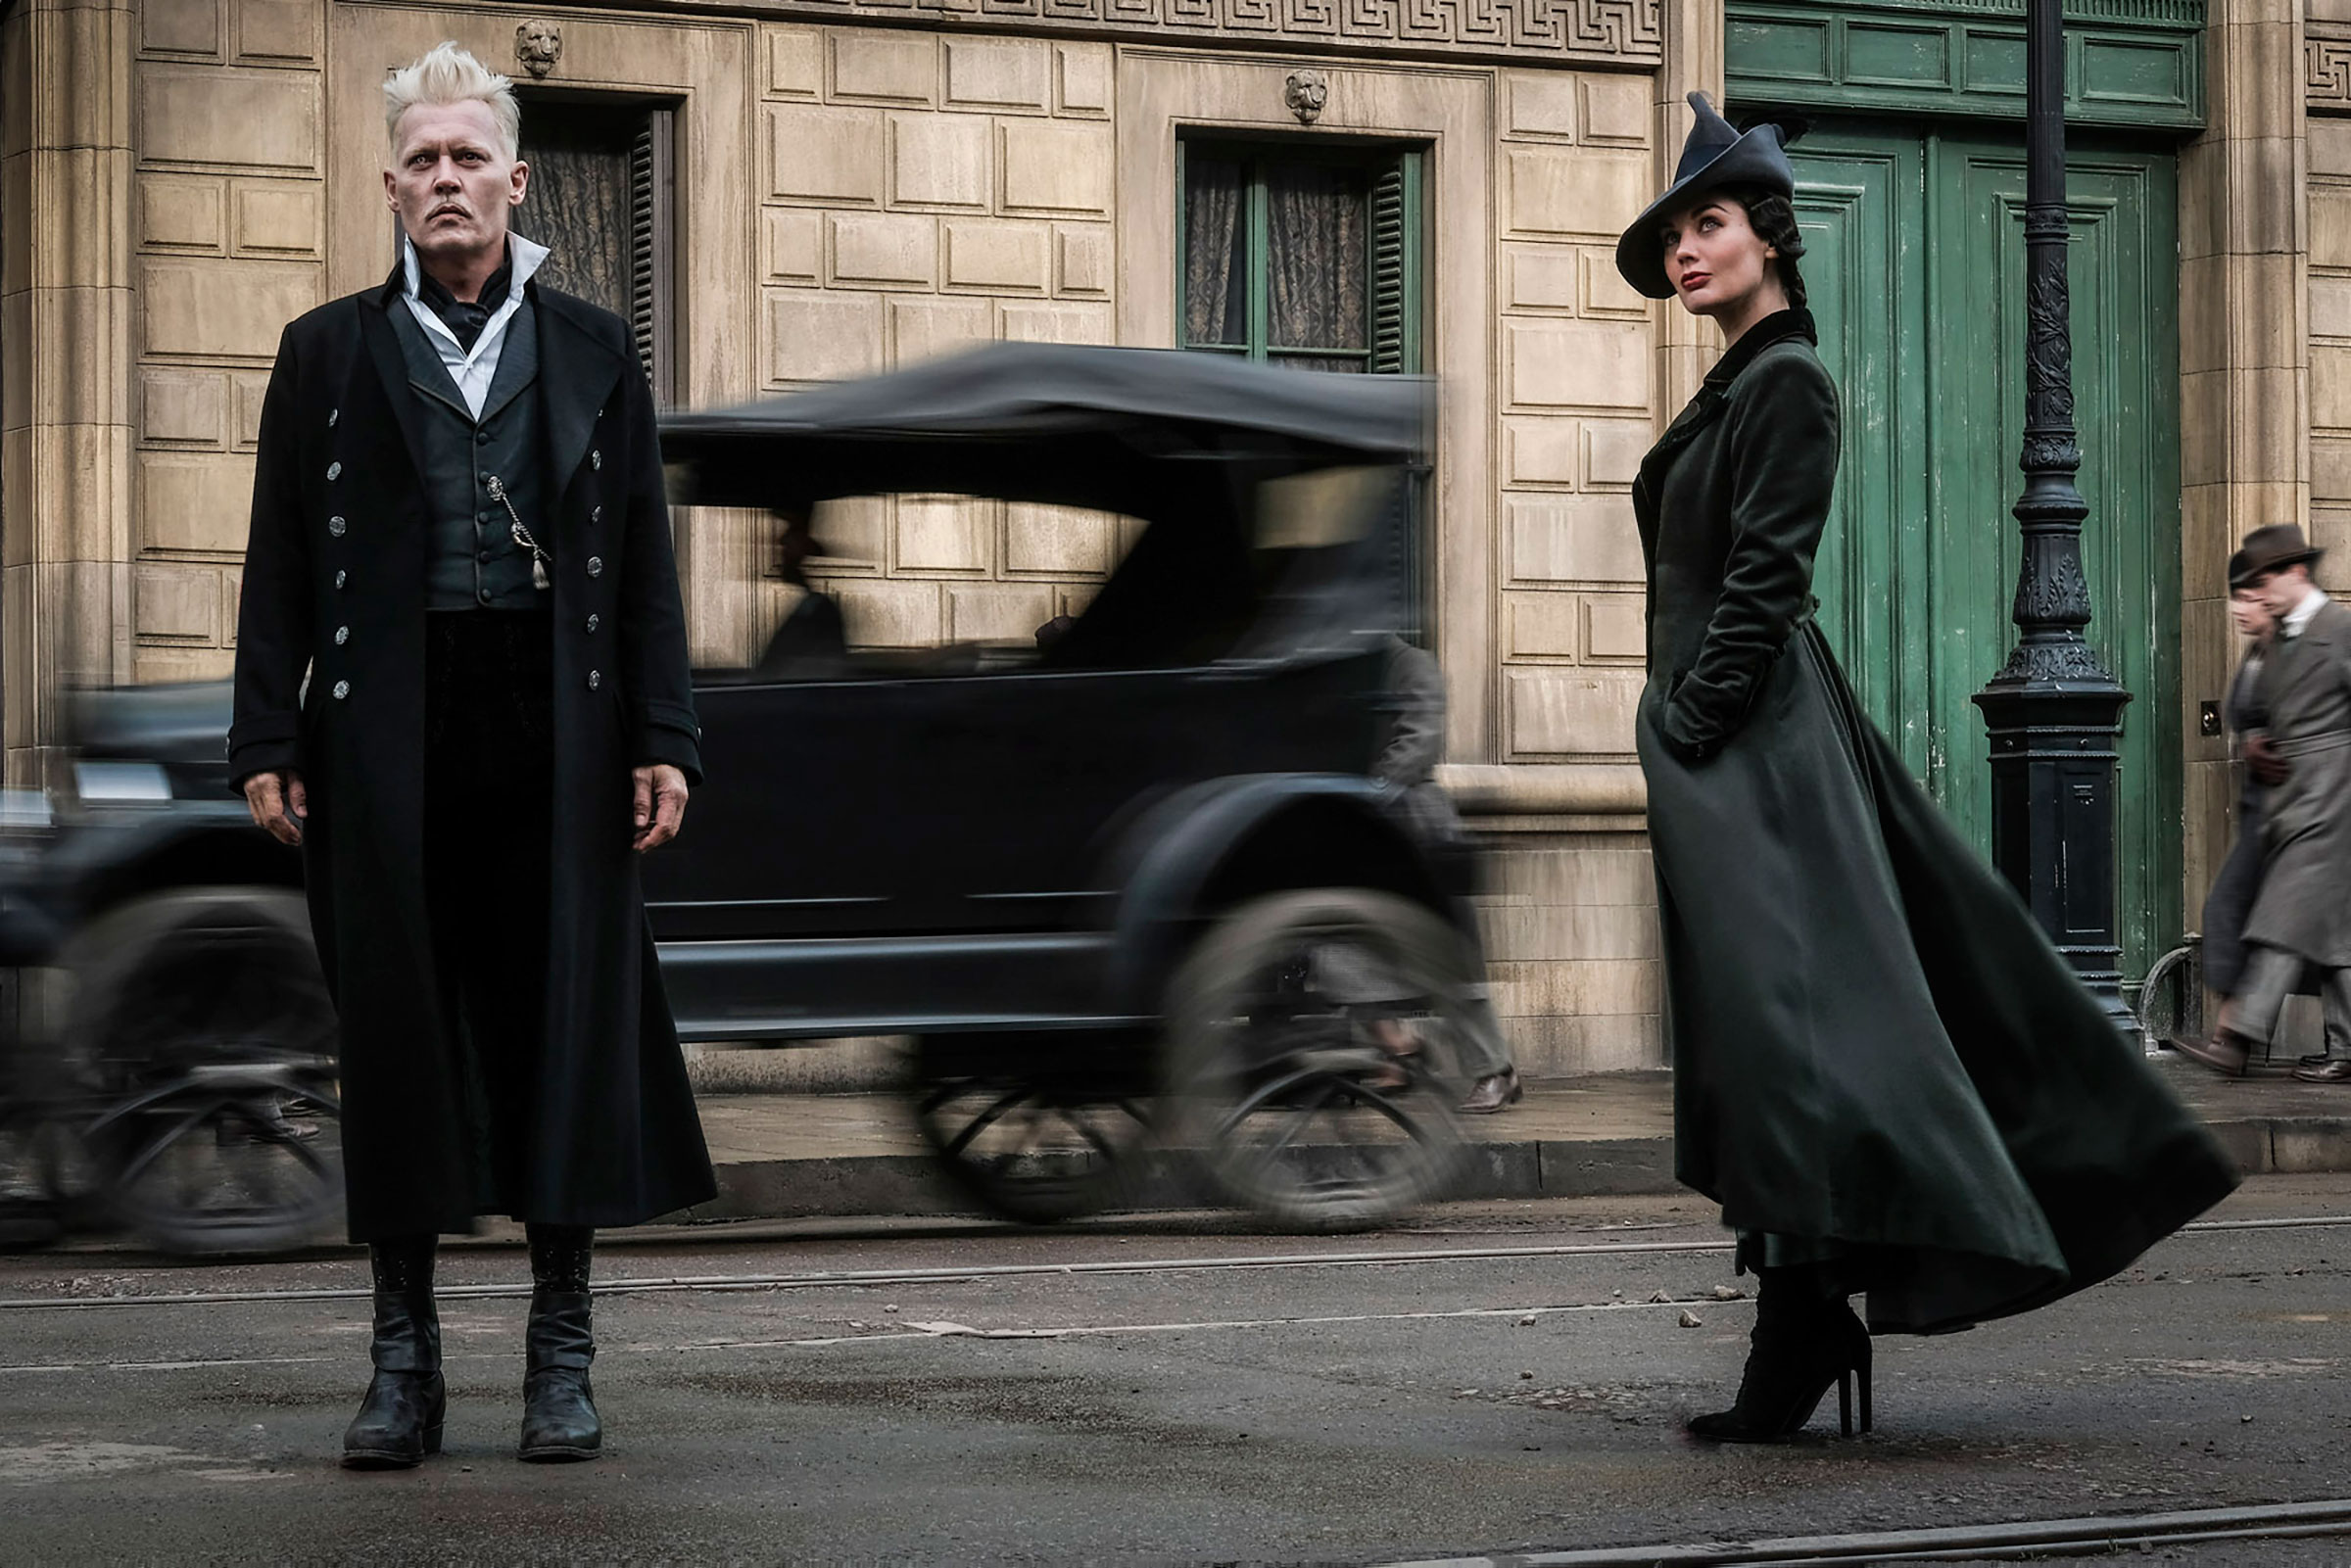 """Fantastic Beasts: The Crimes of Grindelwald"": Gellert Grindelwald (Johnny Depp) and Vinda Rosier (Poppy Corby-Tuech)"